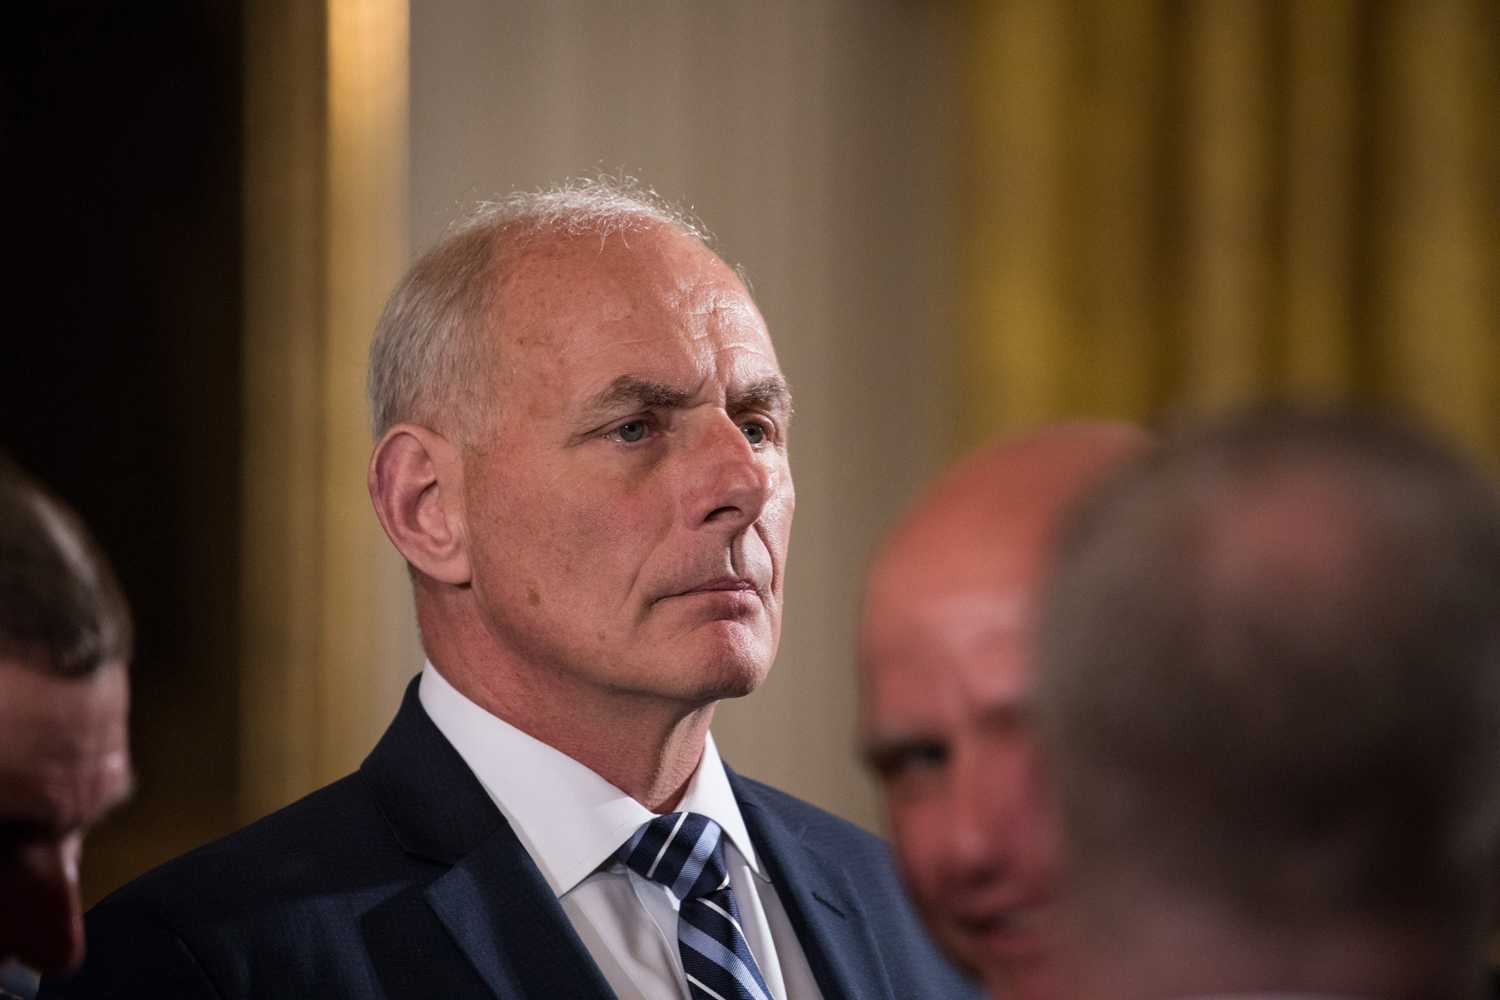 White House Chief of Staff John Kelly attends a Medal of Honor ceremony in the East Room of the White House on July 31. (Cheriss May/Sipa USA/TNS)